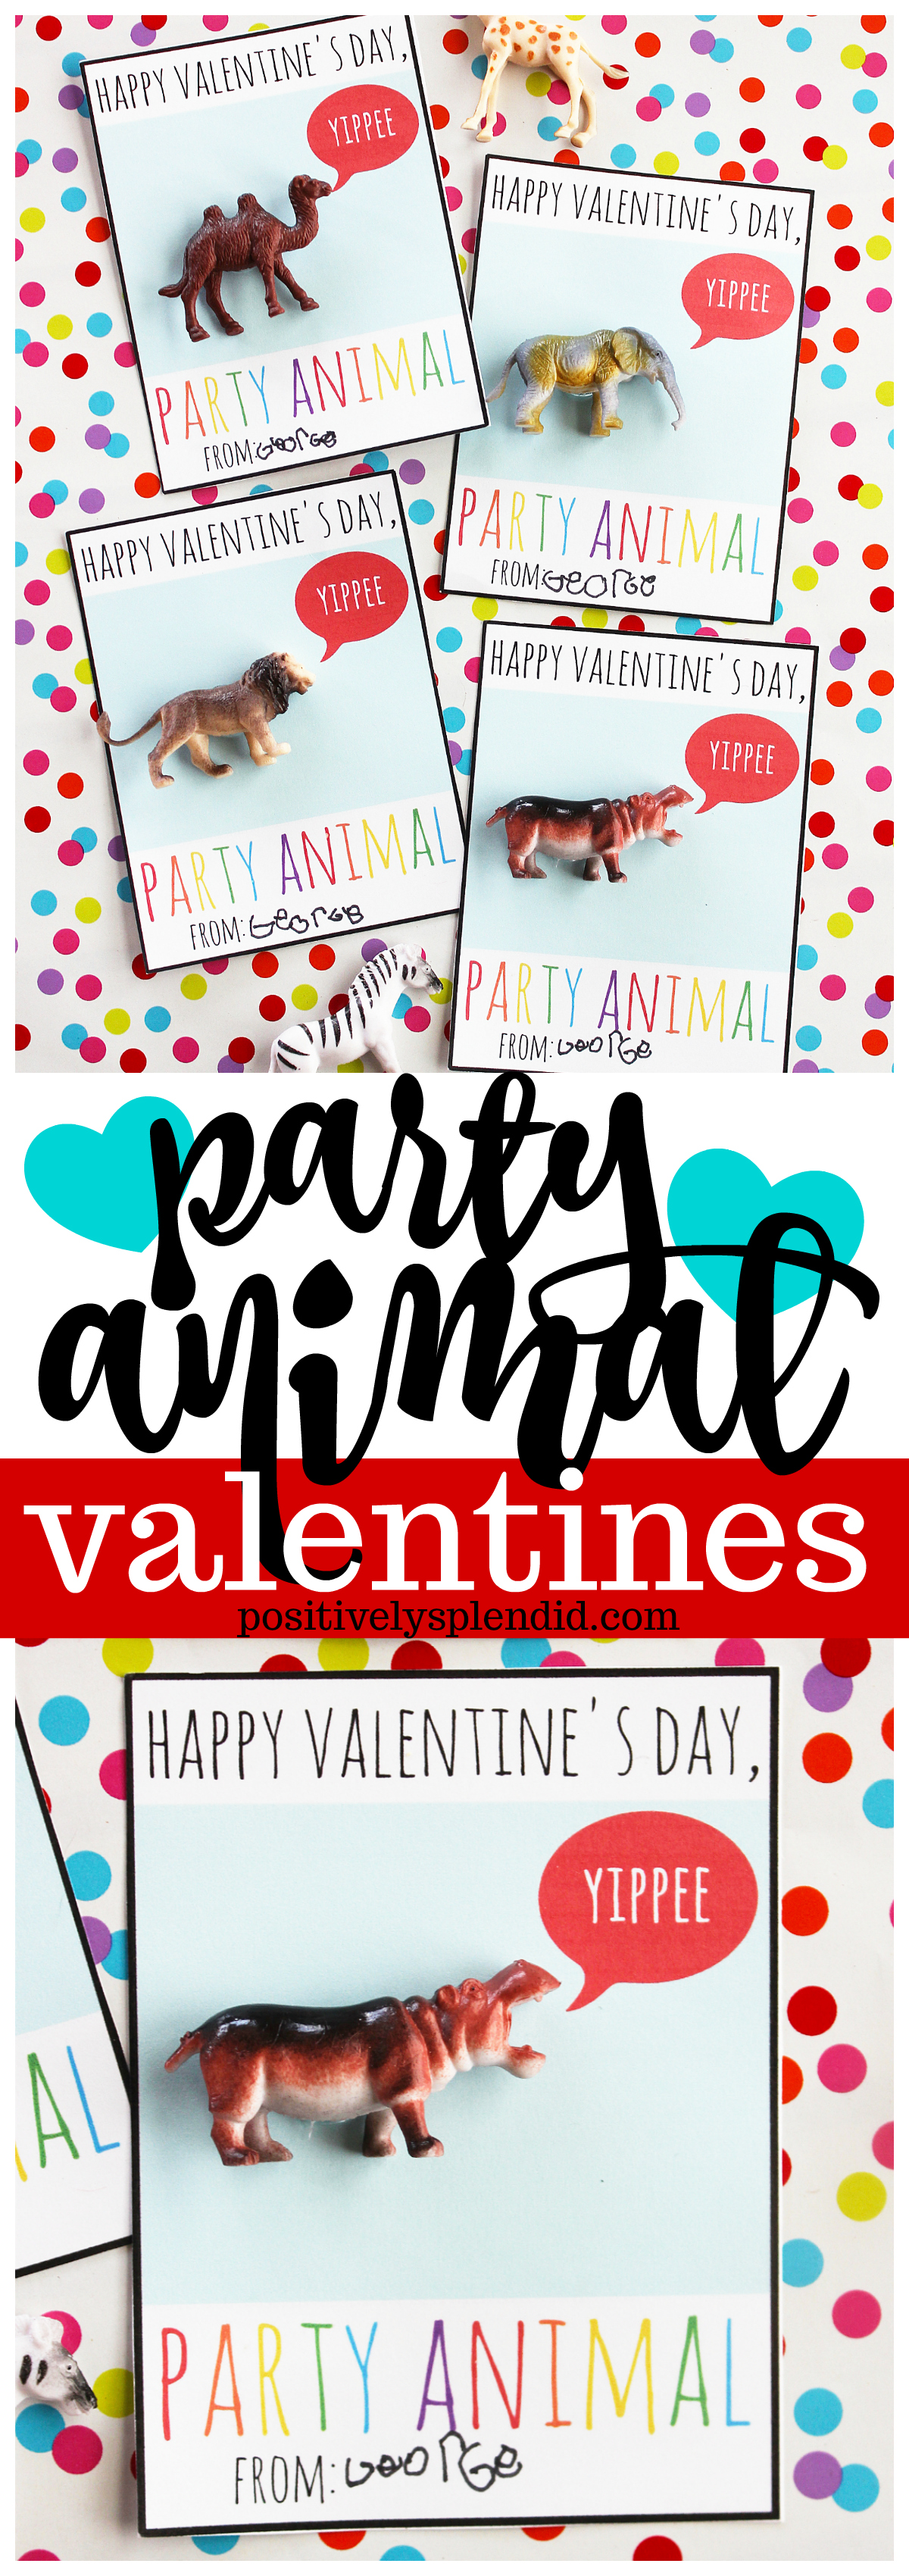 Party Animal Printable Valentines - A fun candy-free classroom valentine idea!